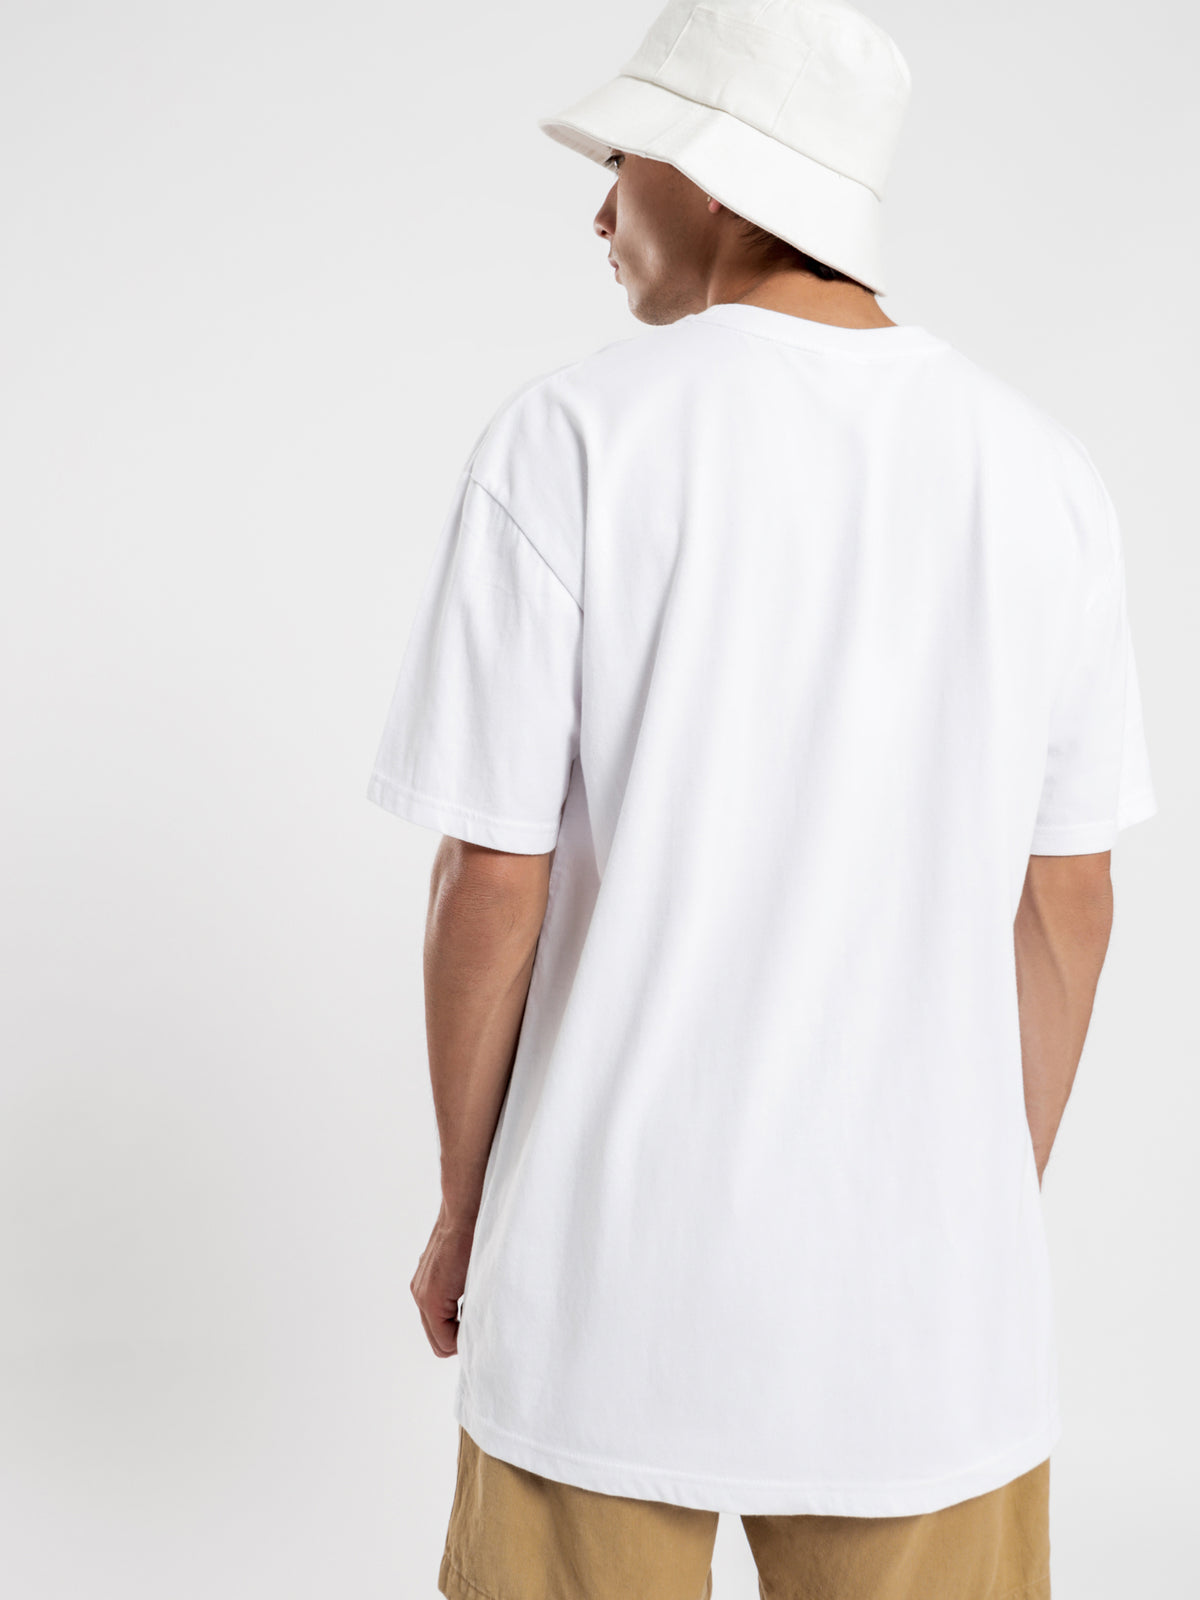 Blunt T-Shirt in White